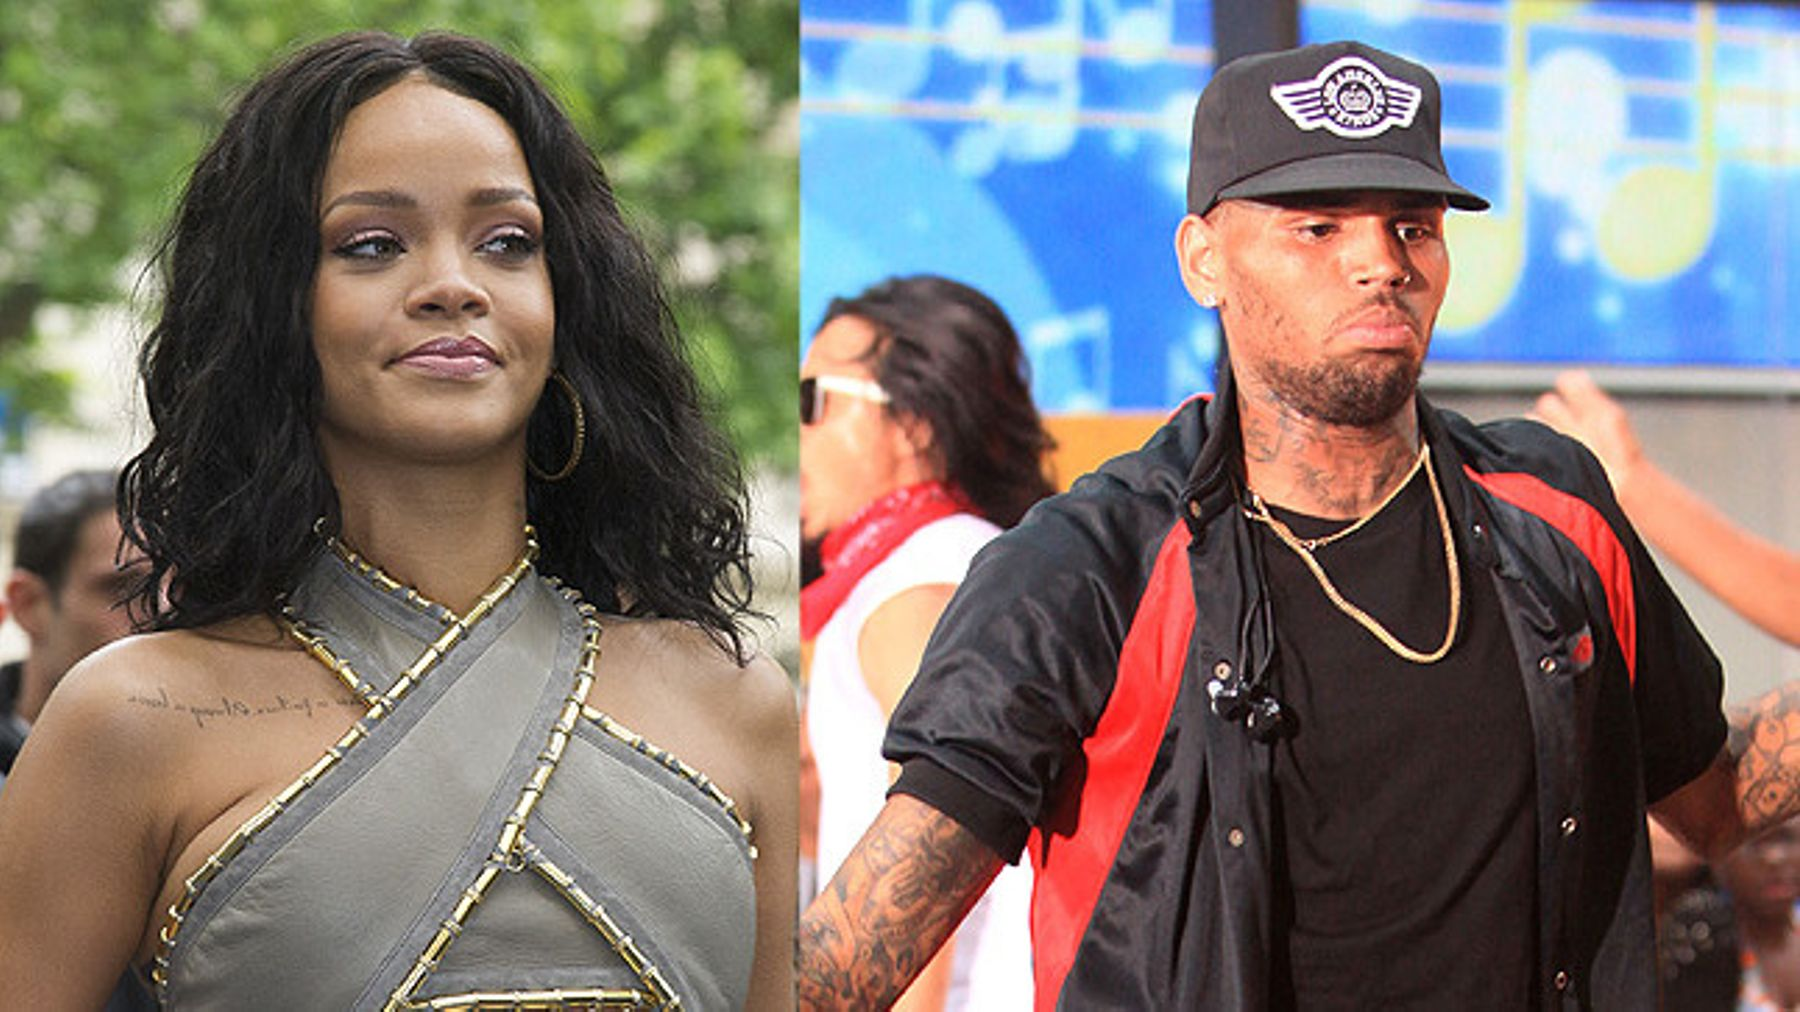 Chris Brown 'bans' DJ from playing Rihanna songs | Closer